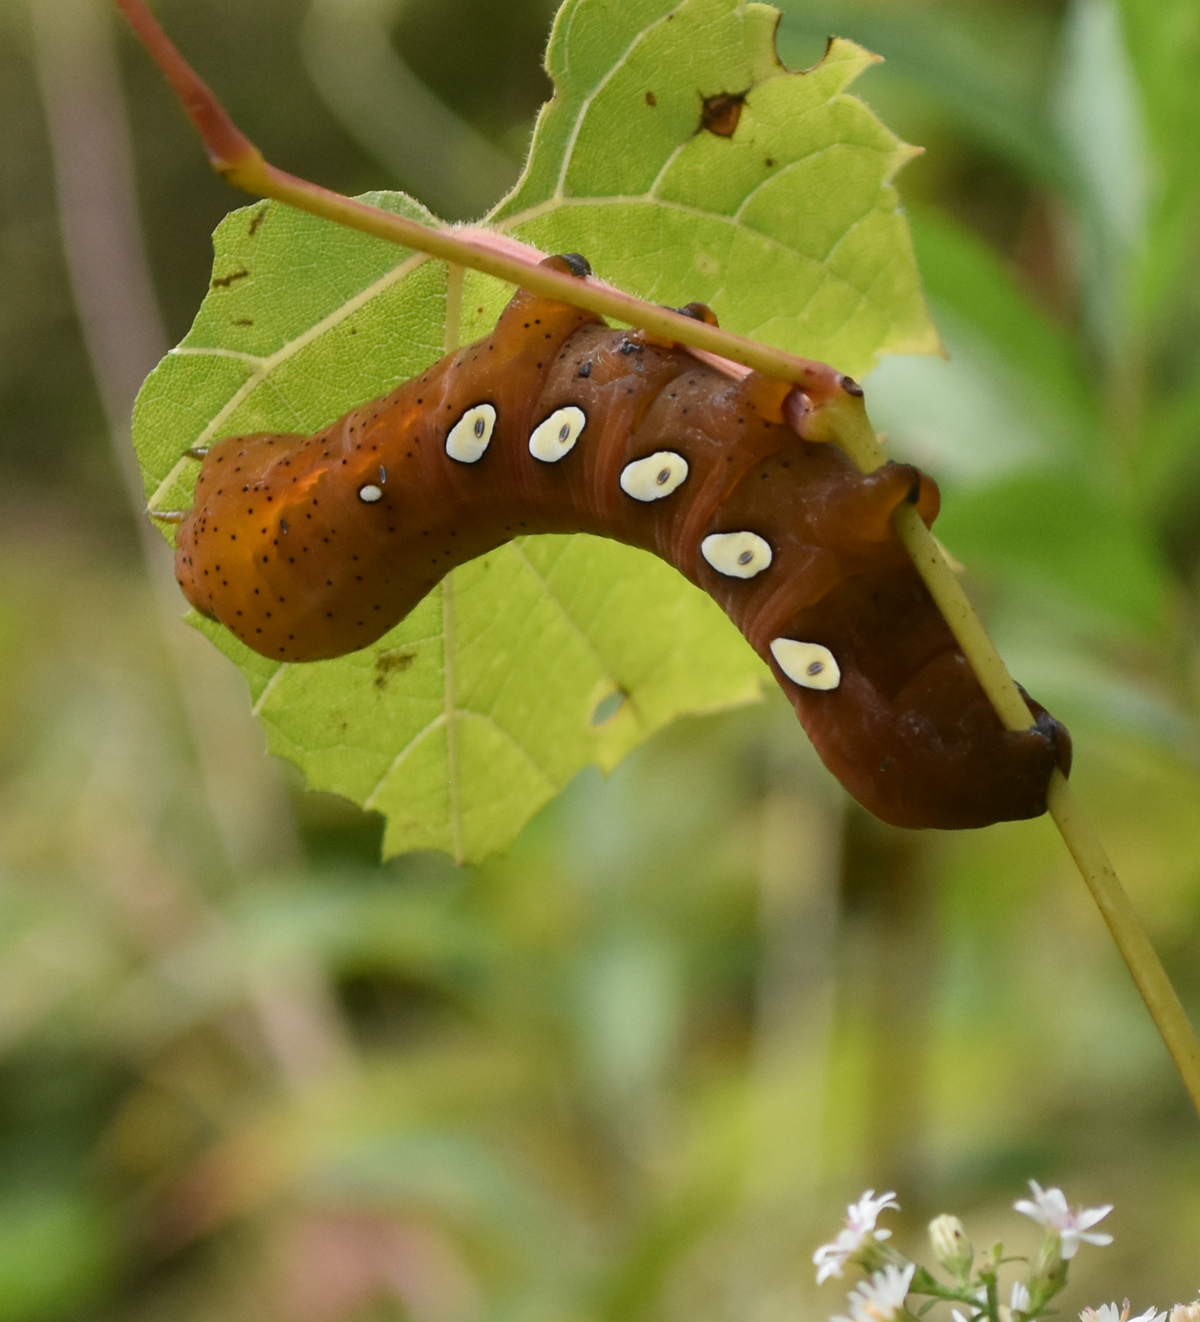 Moth Caterpillar Identification Chart: What Big Smooth Caterpillar Is Rusty Brown With 5 White